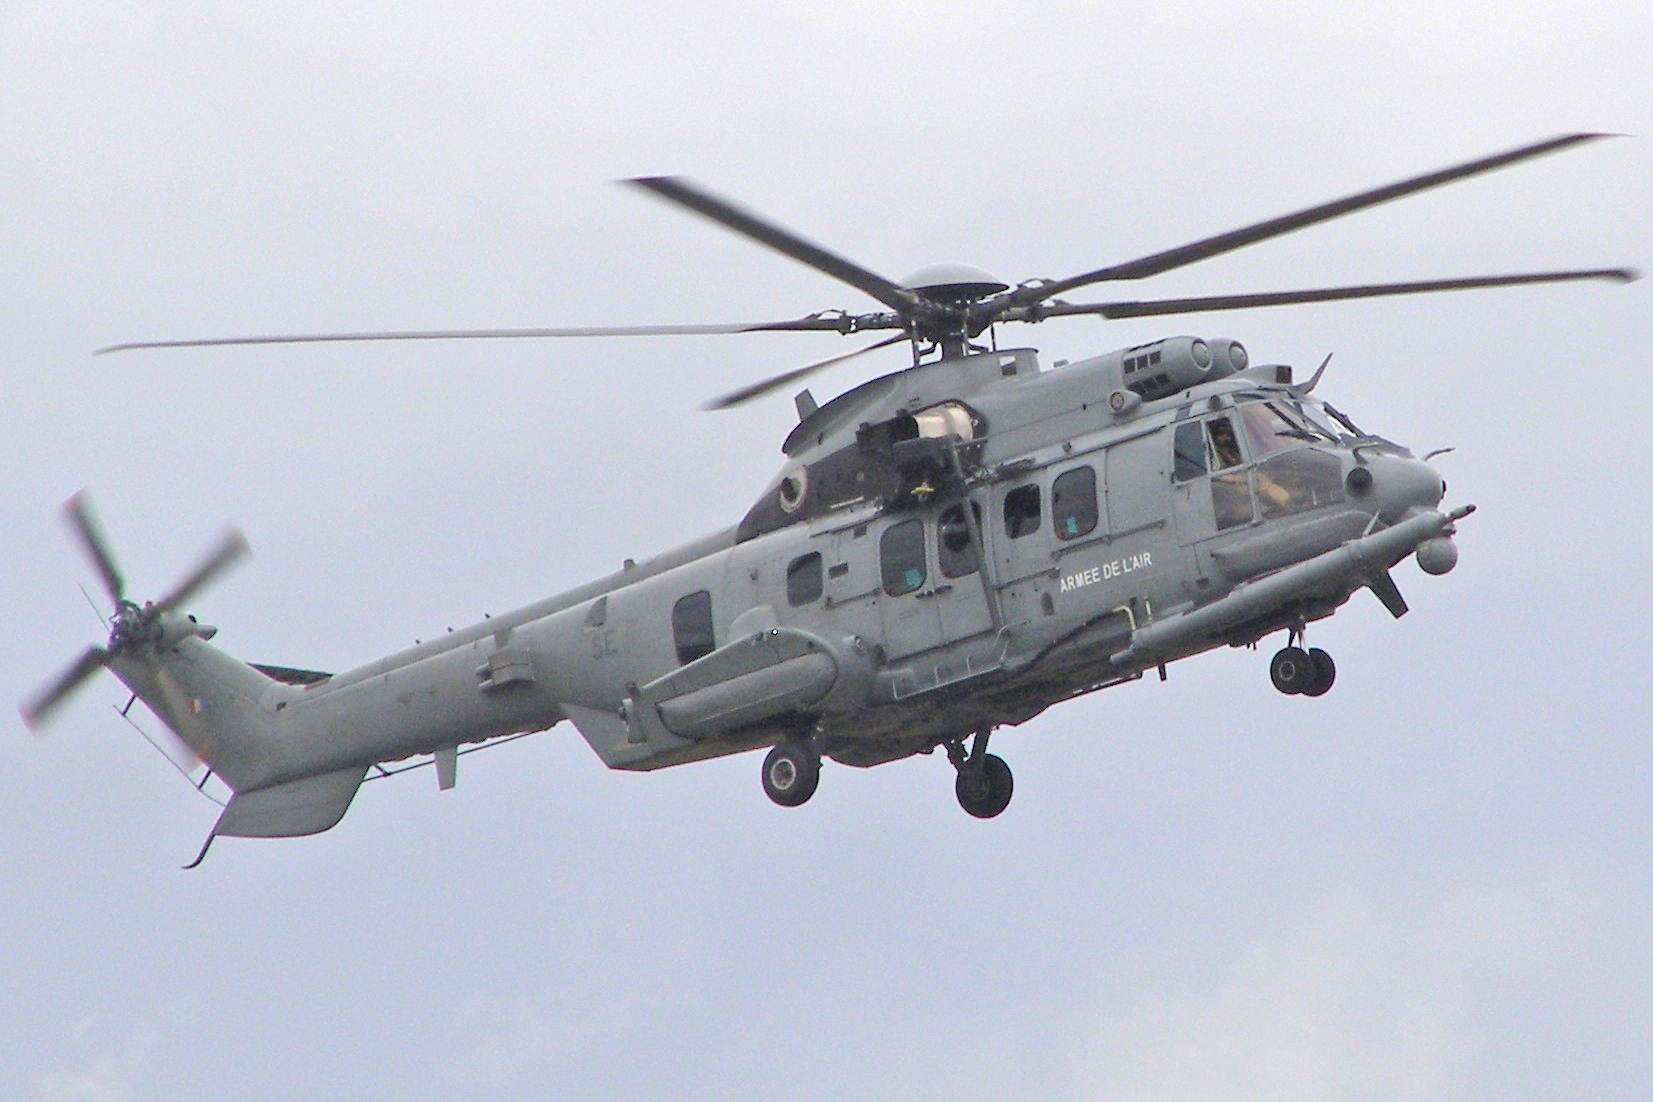 Eurocopter EC725 - Wikipedia